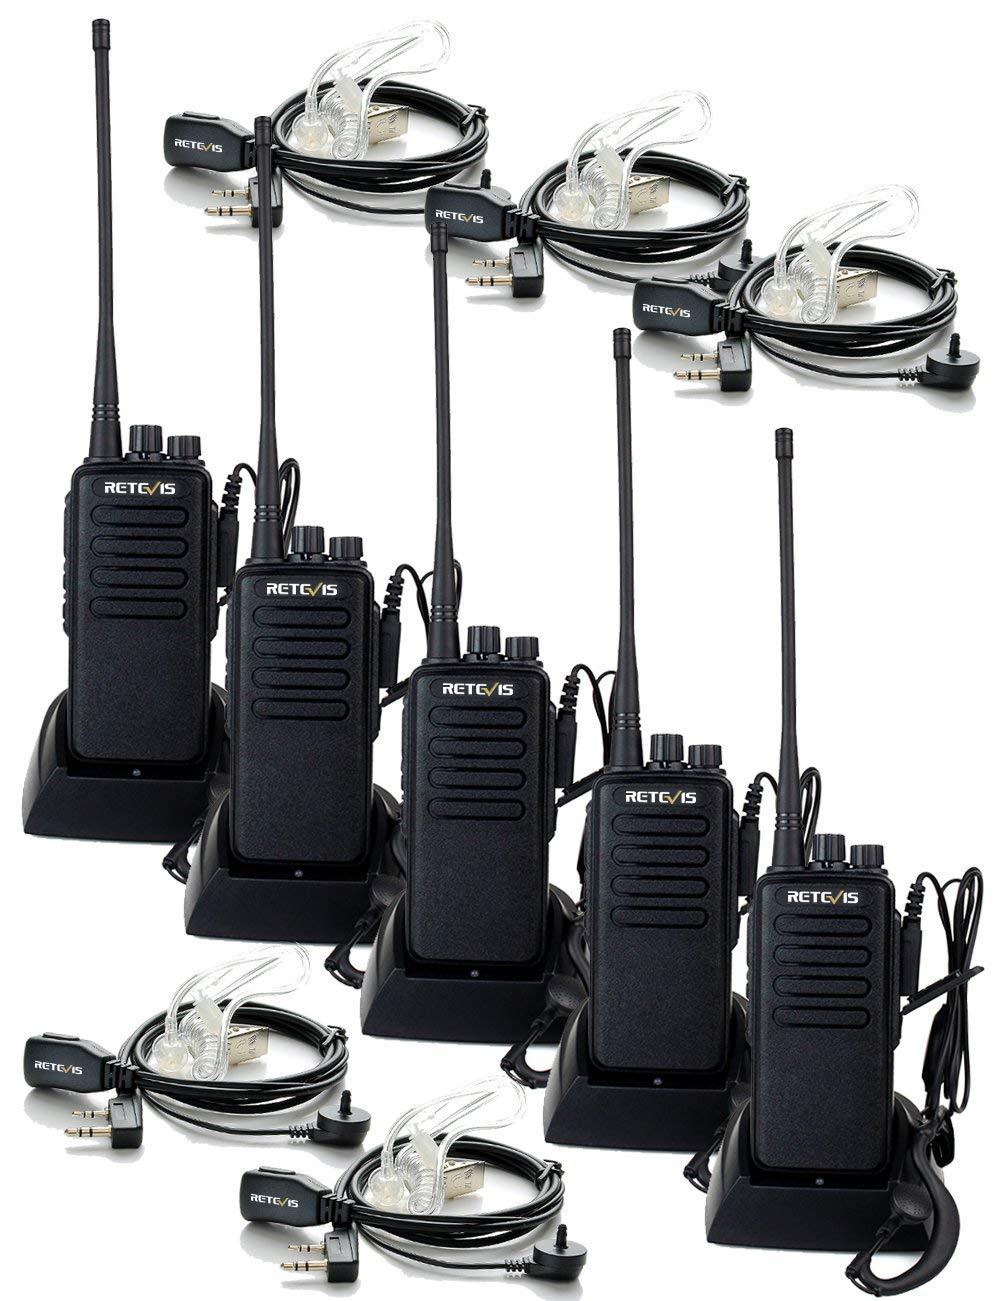 Retevis RT1 Two Way Radios Long Range High-Power UHF 16CH 2 Way Radios Handsfree Encryption 3000mAh Walkie Talkies with Earpiece 5 Pack